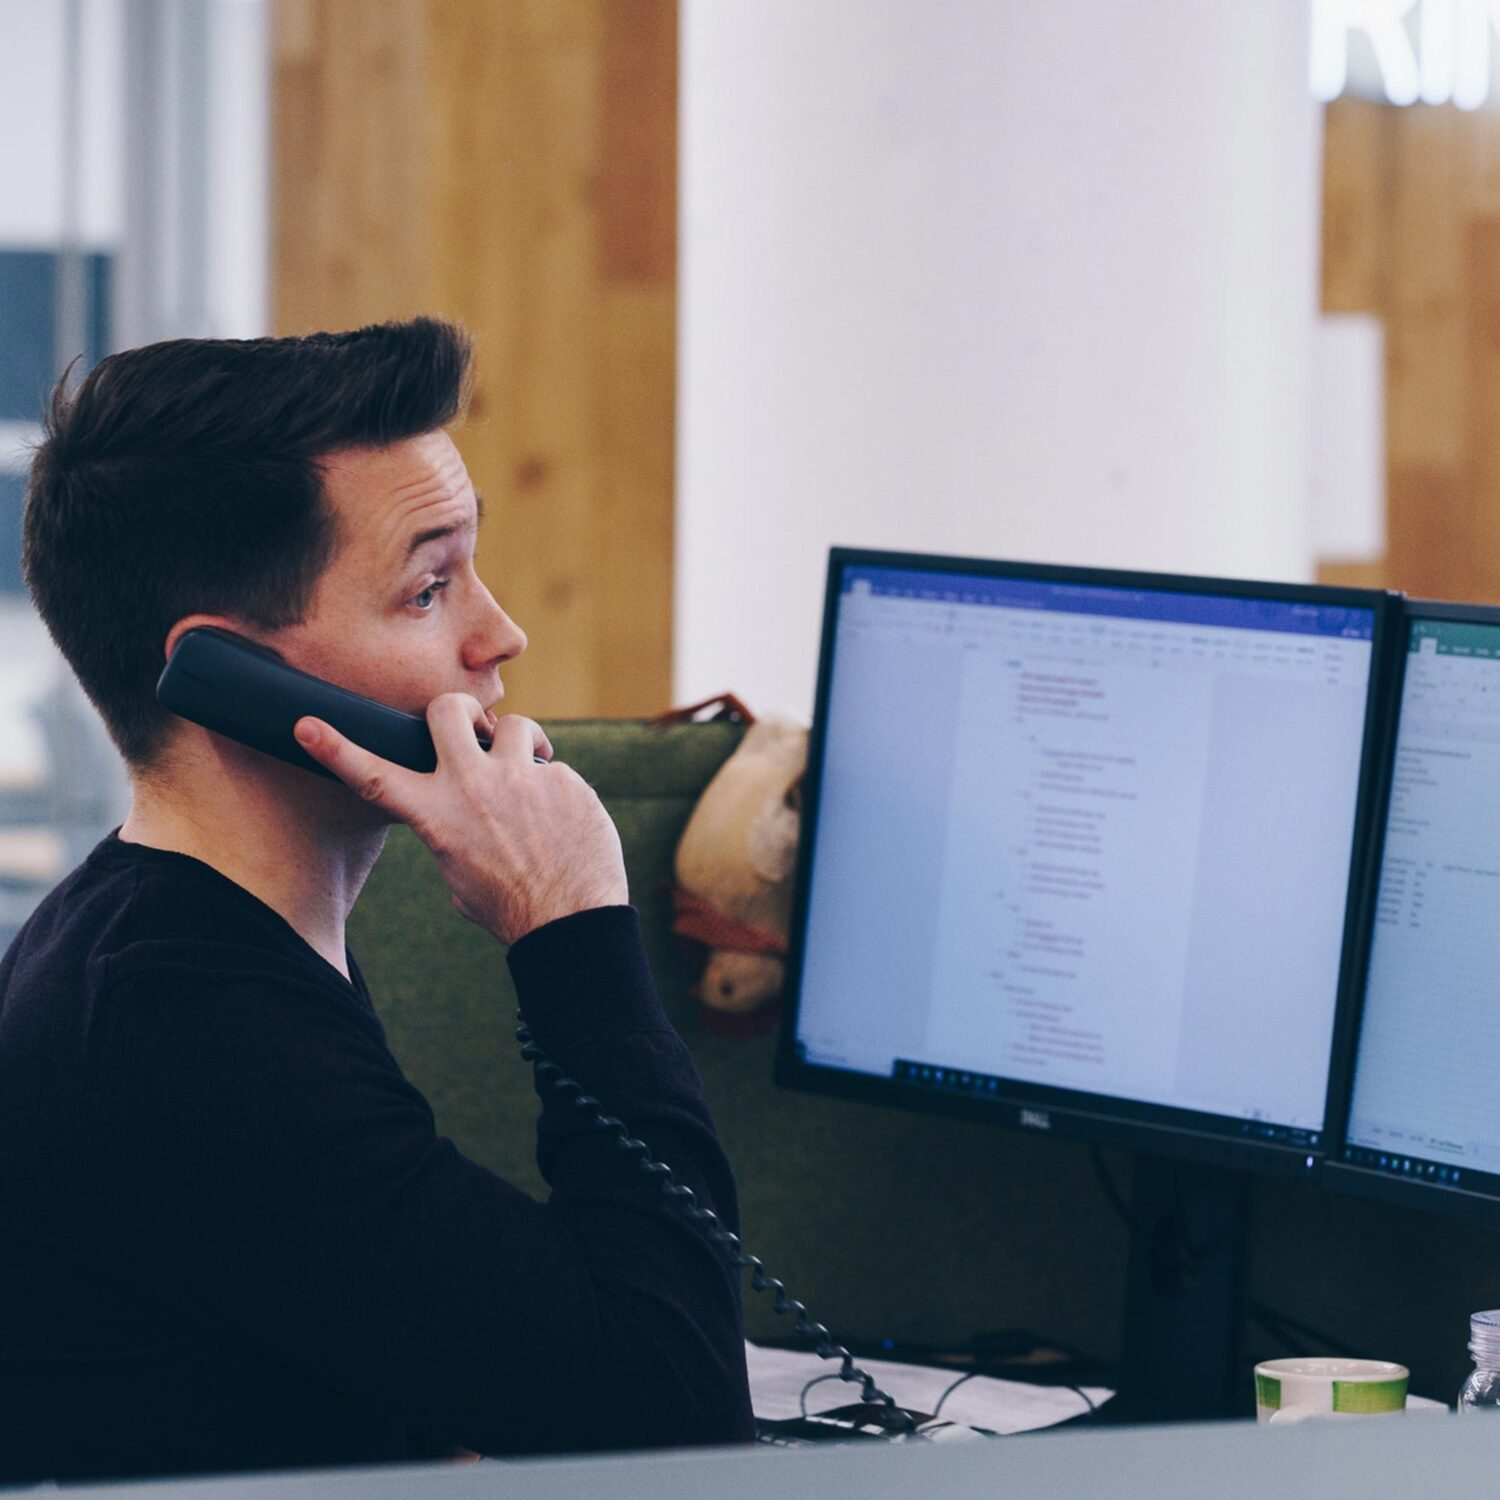 A BellRing employee at a desk, talking on a phone.